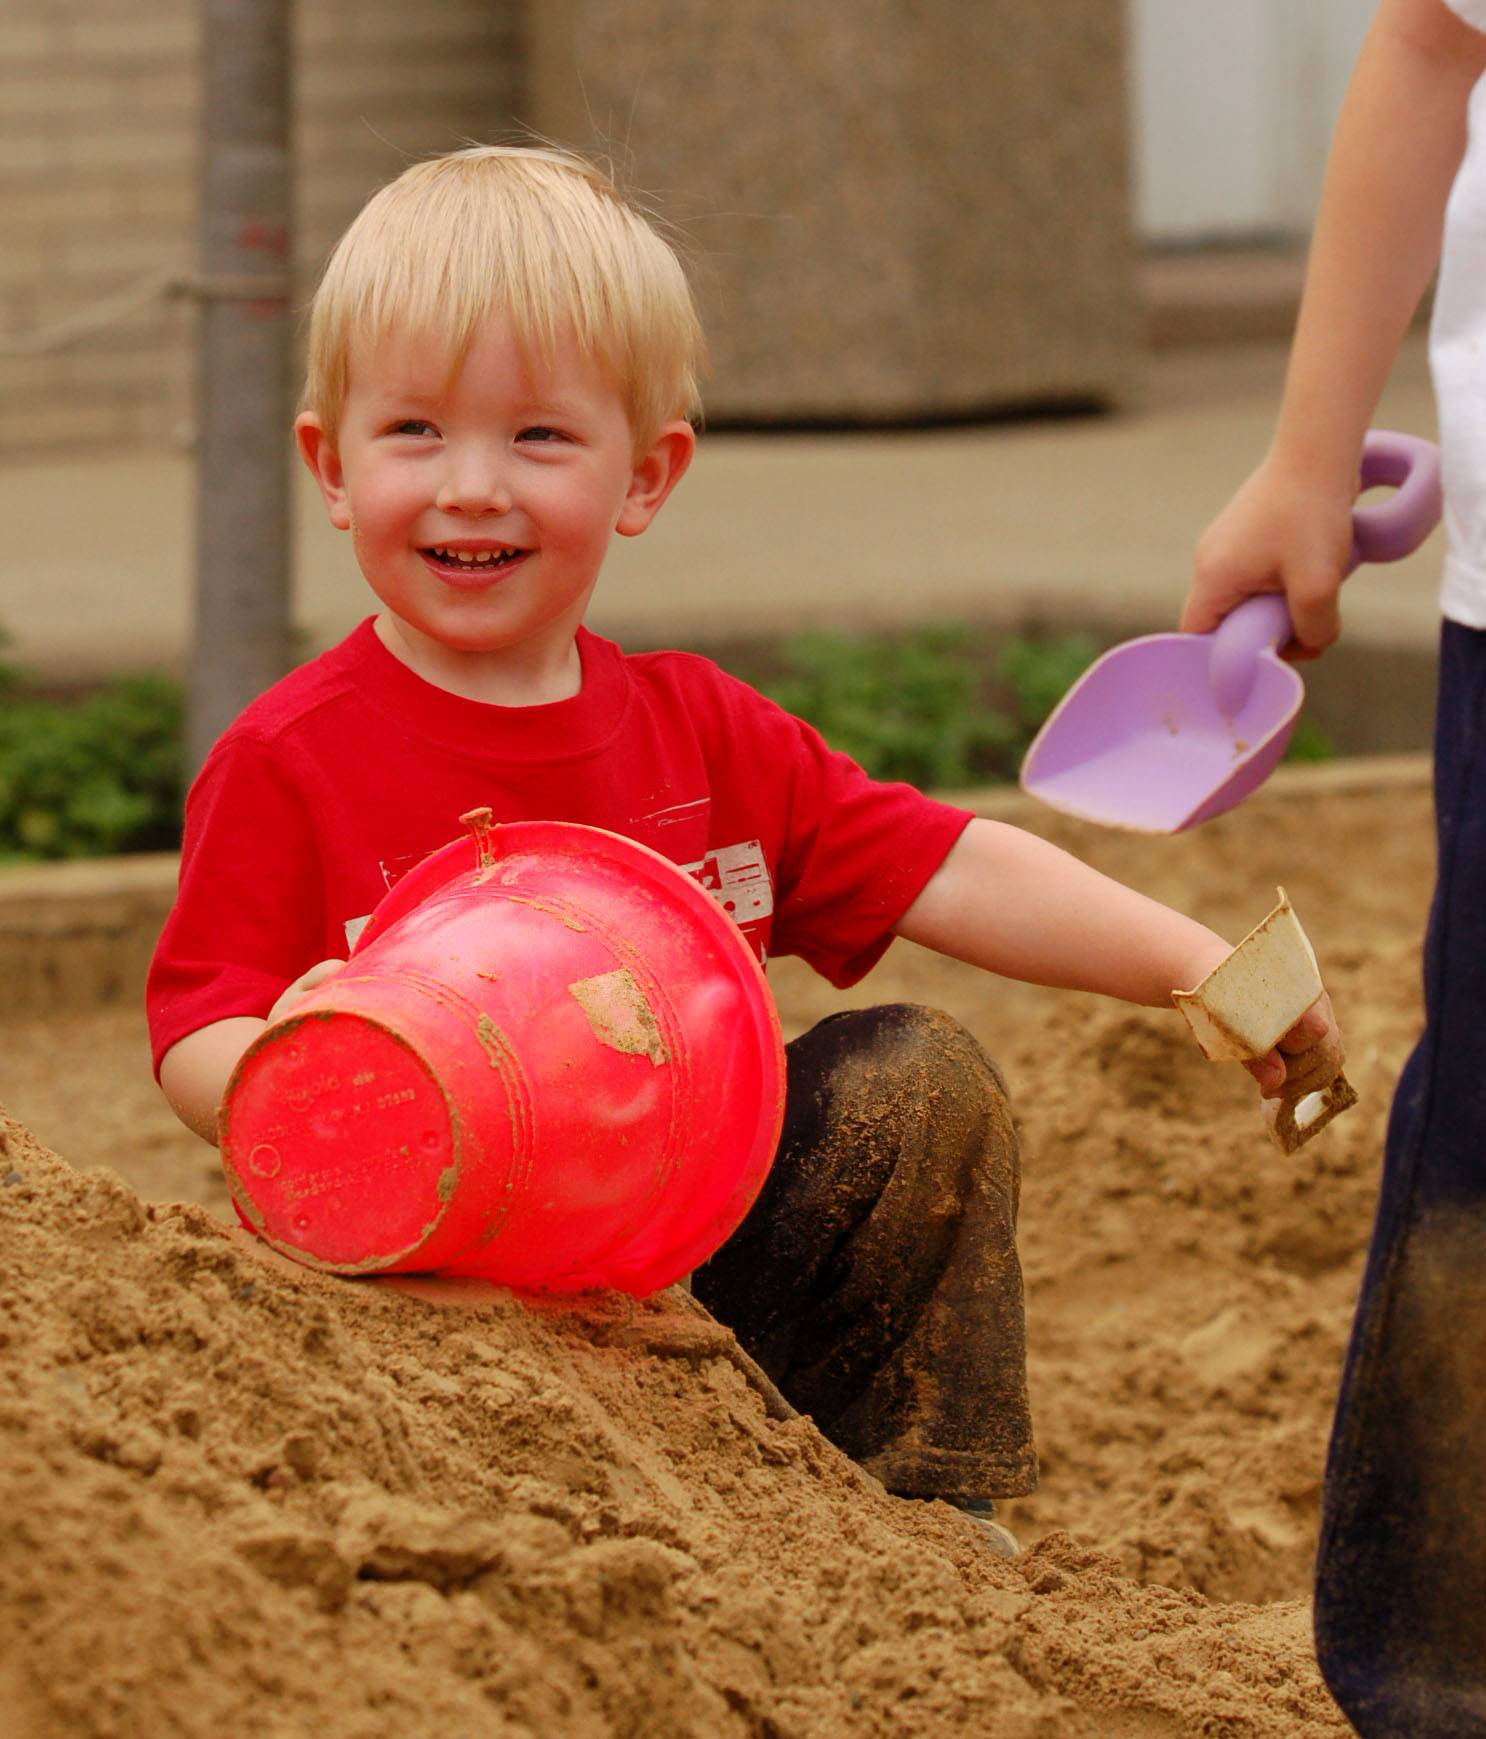 Rowan Sather, 2, of St. Charles plays at the beach at St. Charles RiverFest.